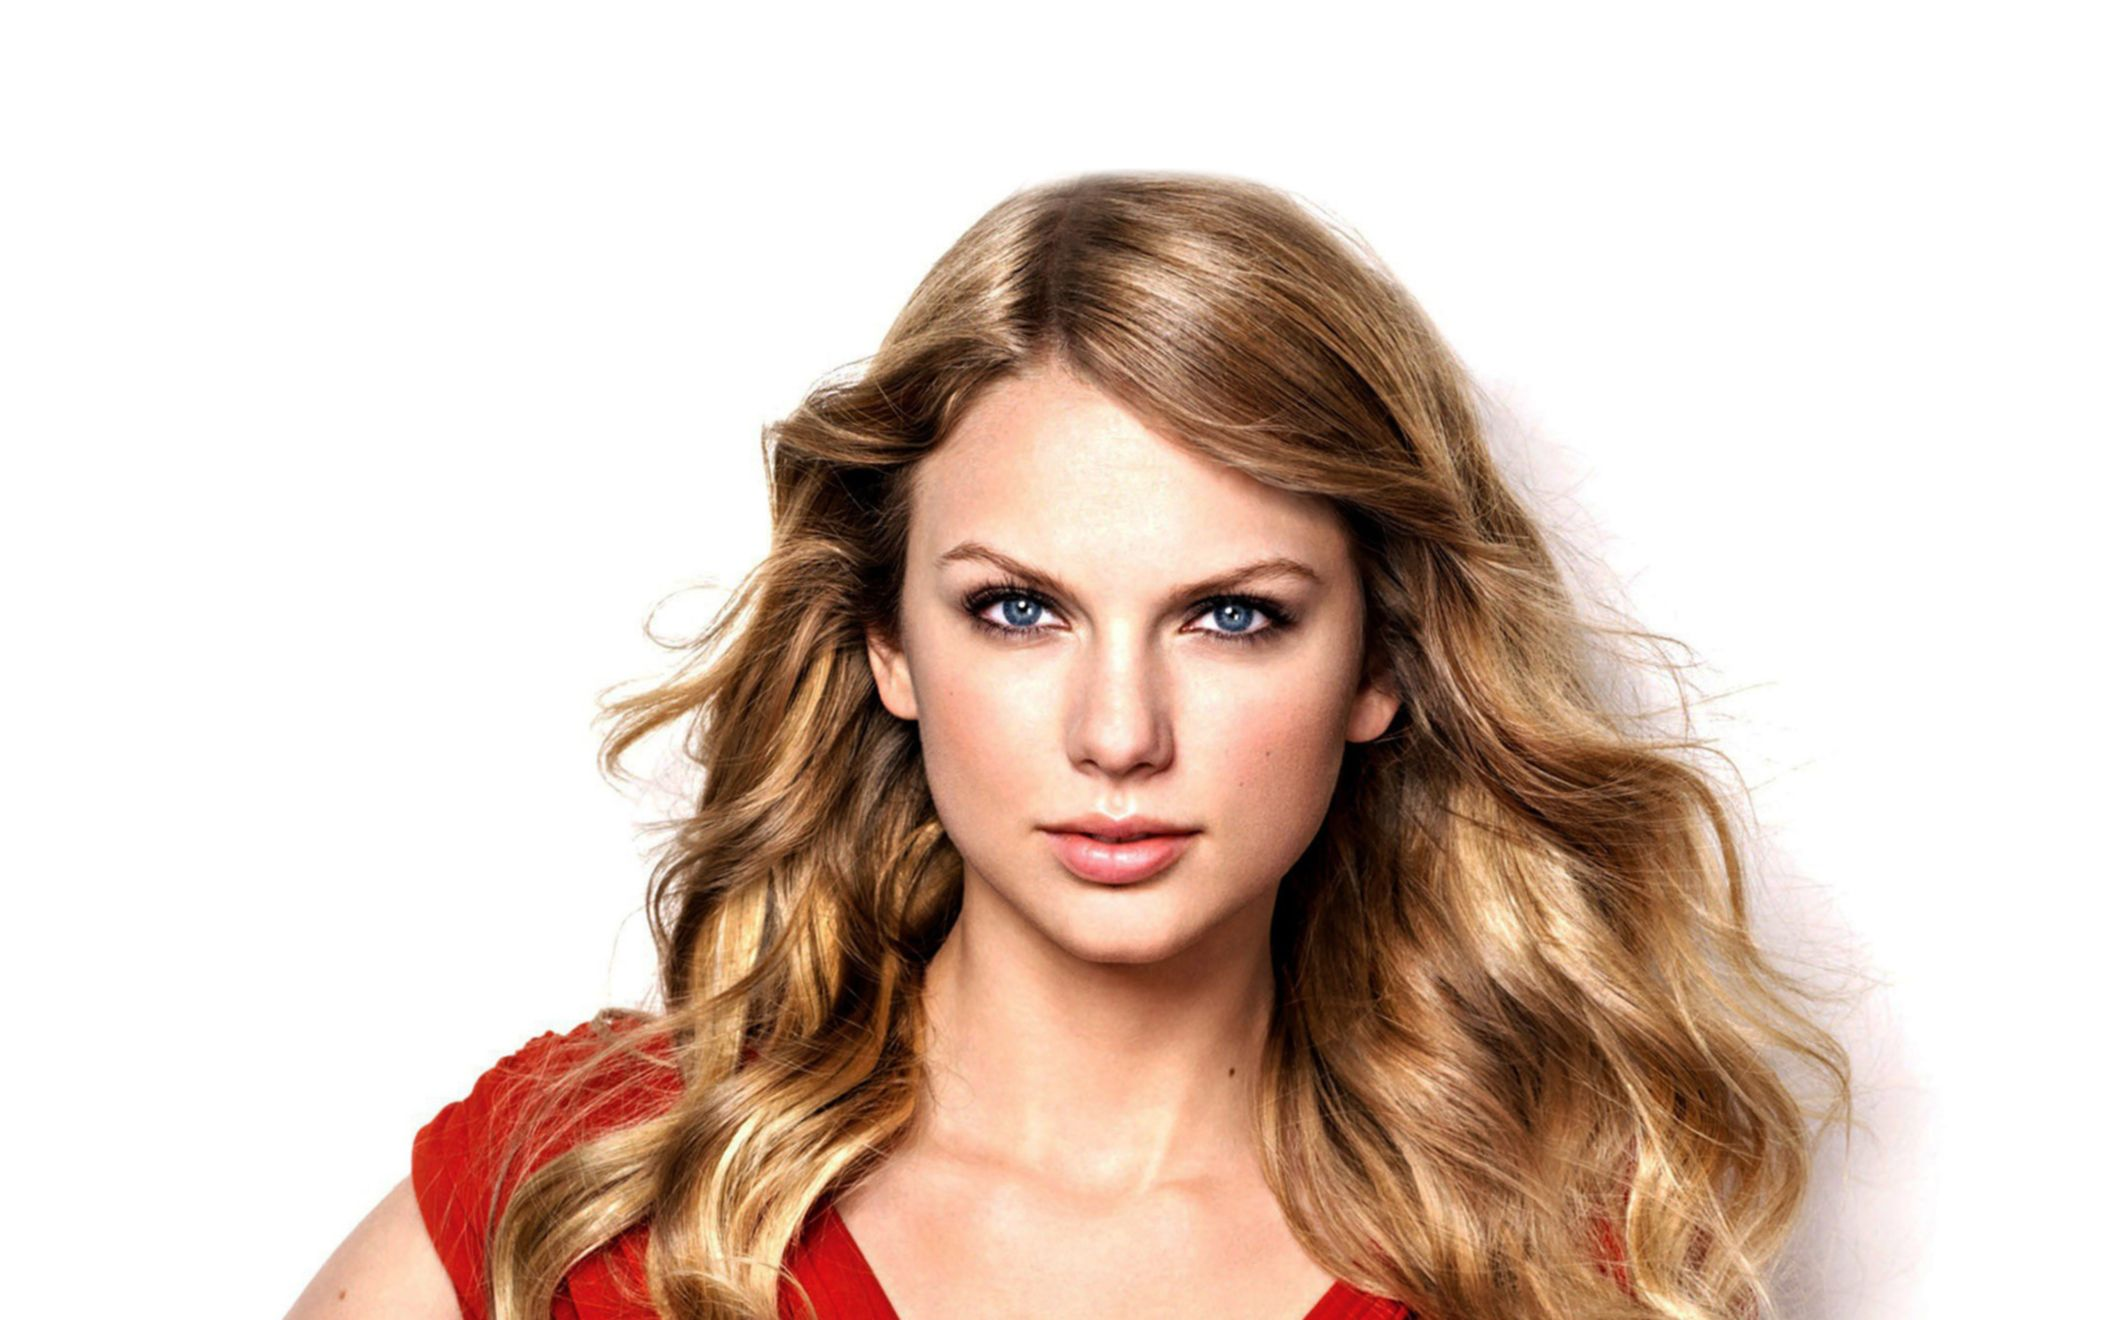 Download free HD Taylor Swift 15 Wide Wallpaper, image